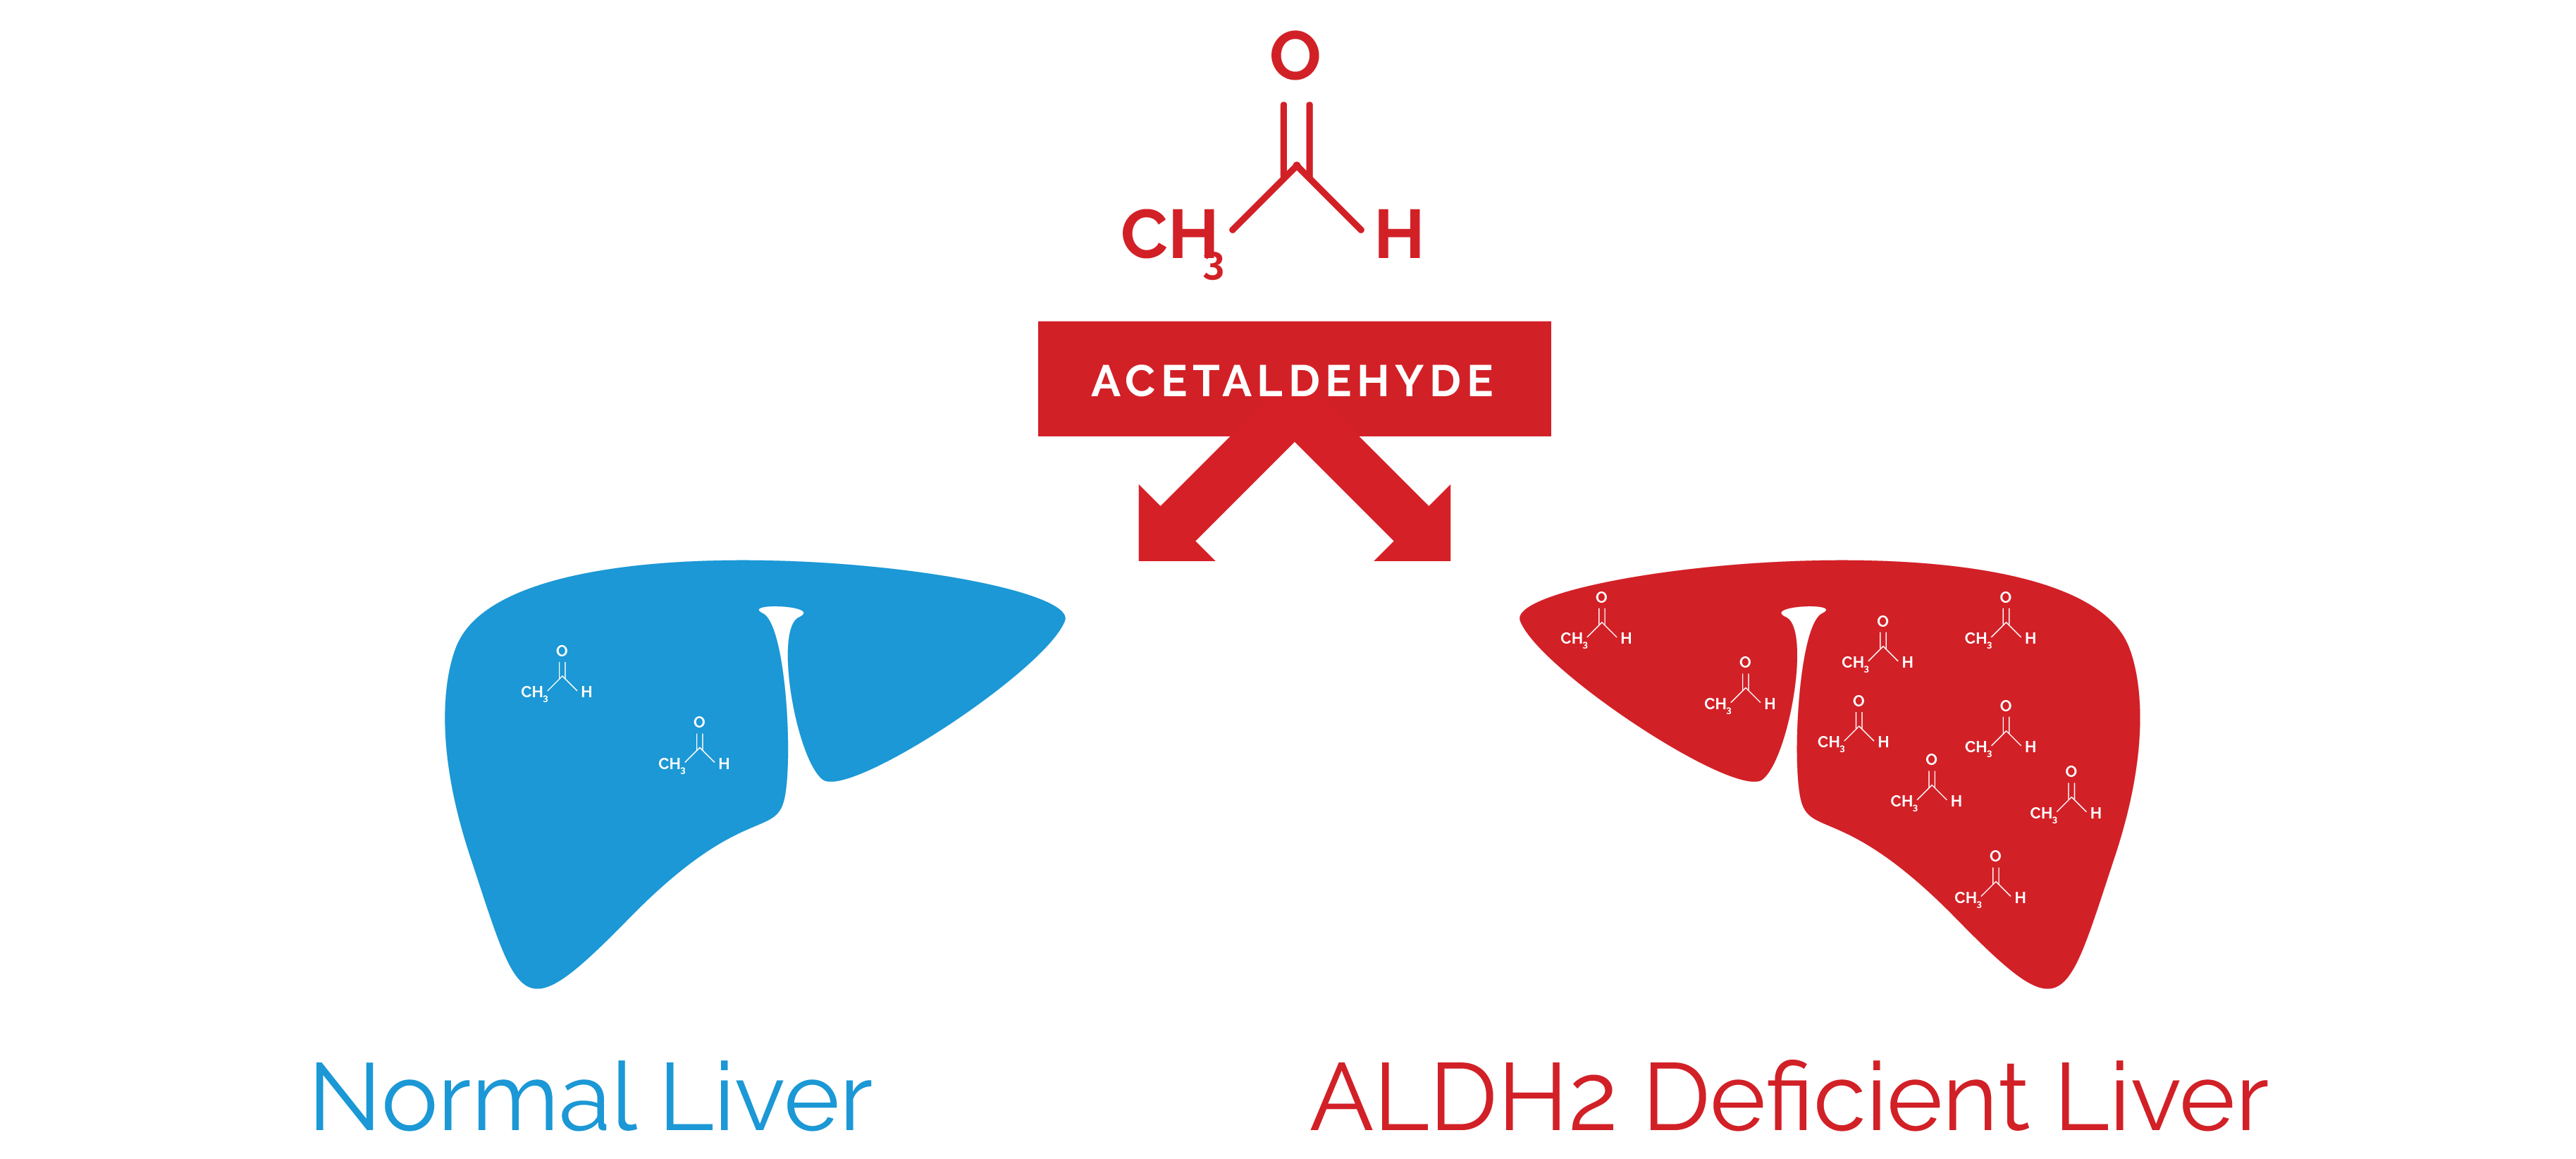 Aldh2 deficiency liver graphic 8529c91d 8561 4c87 ba65 c71be8a4b1dd